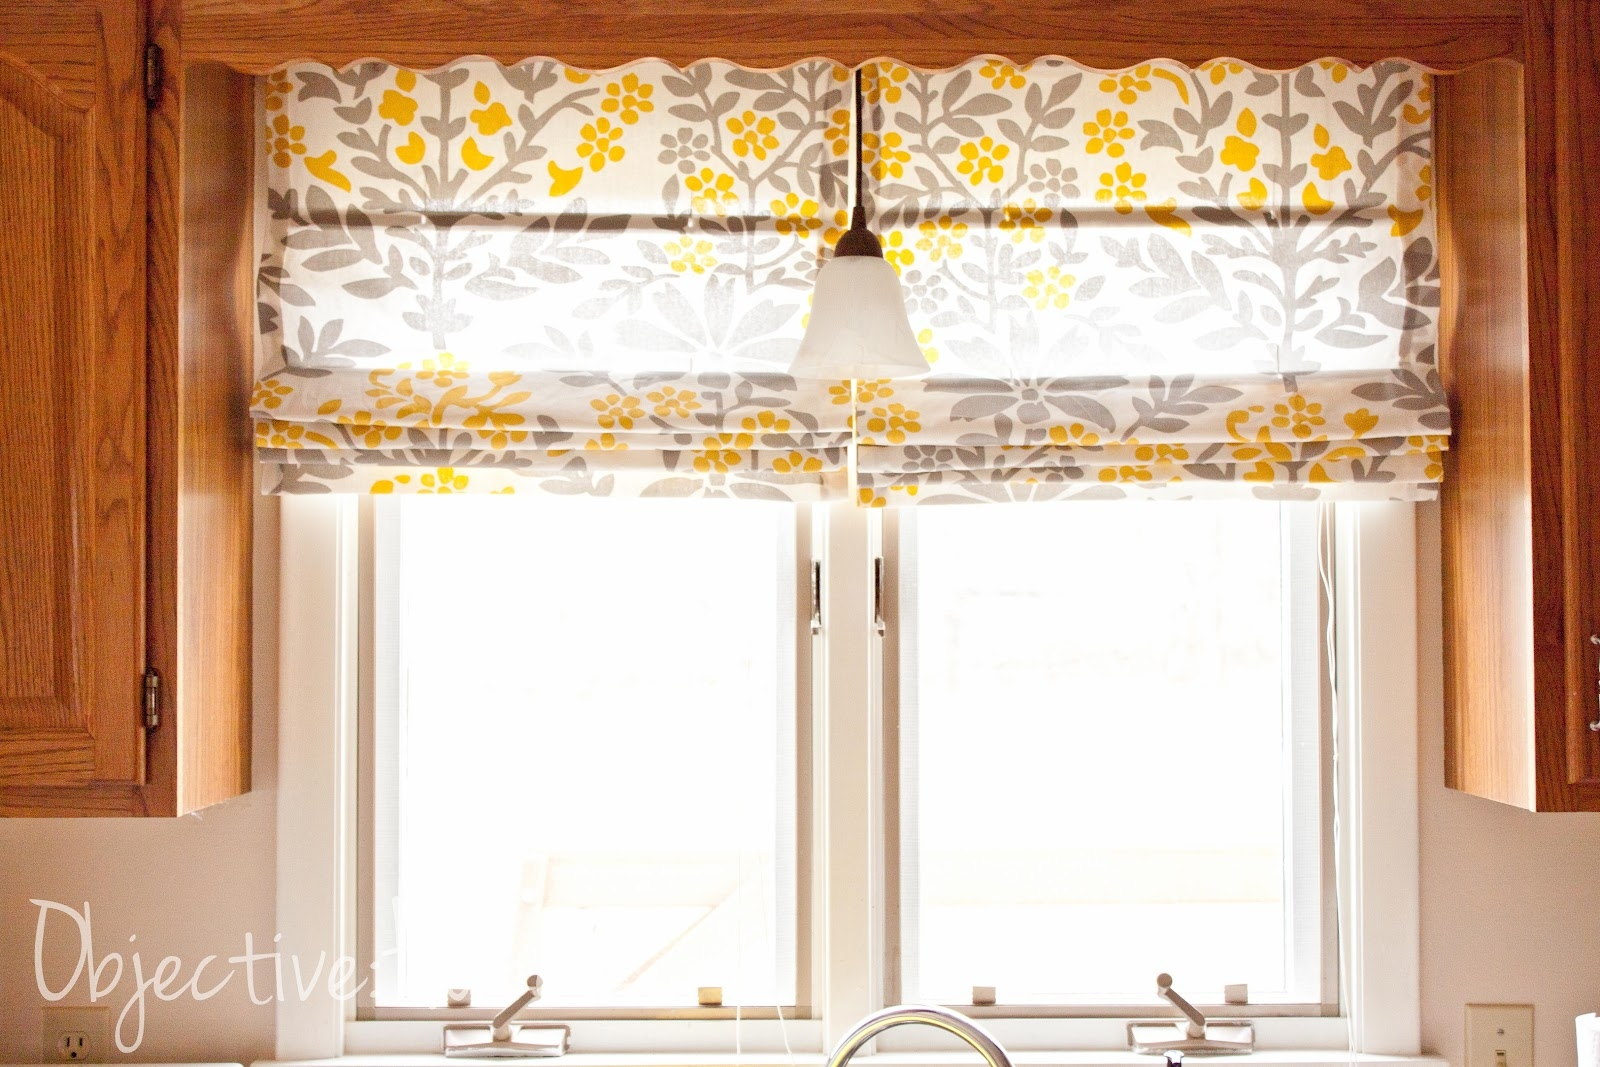 Objectivehome Easy No Sew Roman Shades For 450 With Regard To Pre Made Roller Blinds (Image 11 of 15)